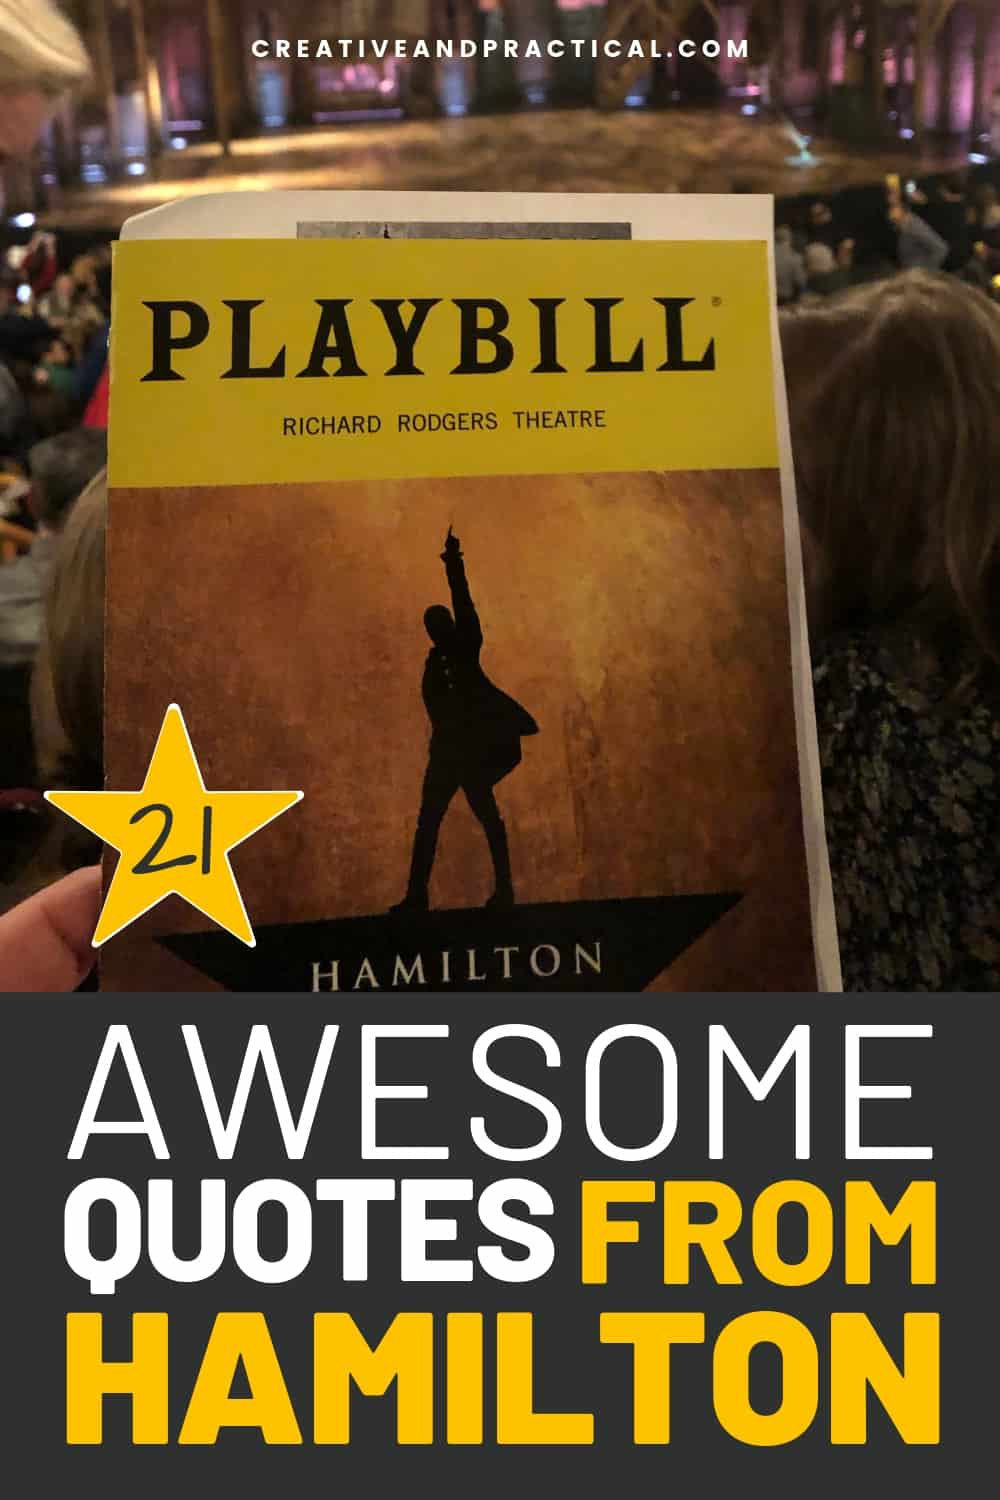 Awesome Hamilton Quotes You'll Need To Save Right Now